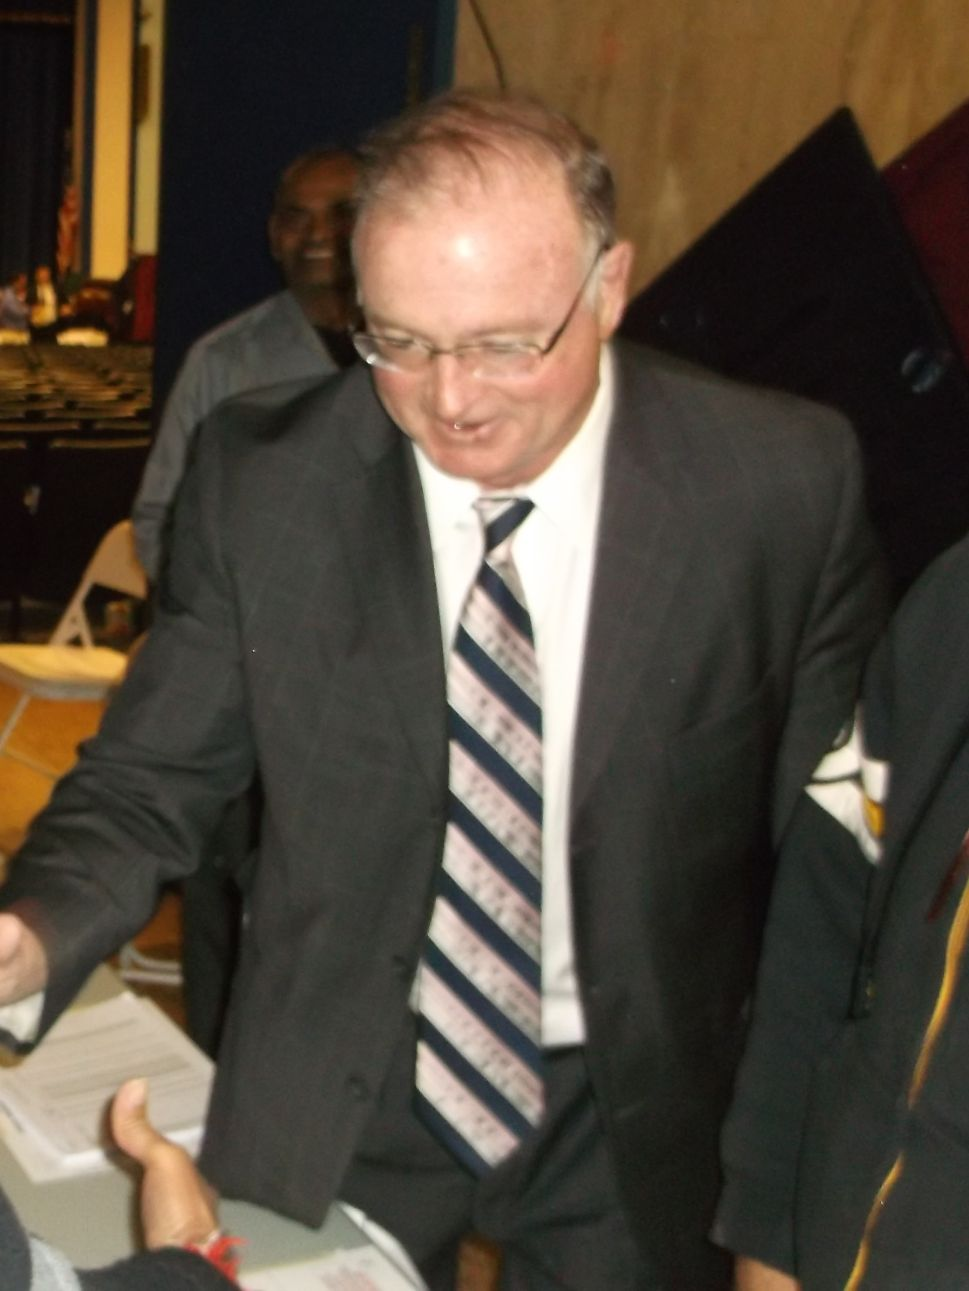 Source: Healy calls Fulop to concede race